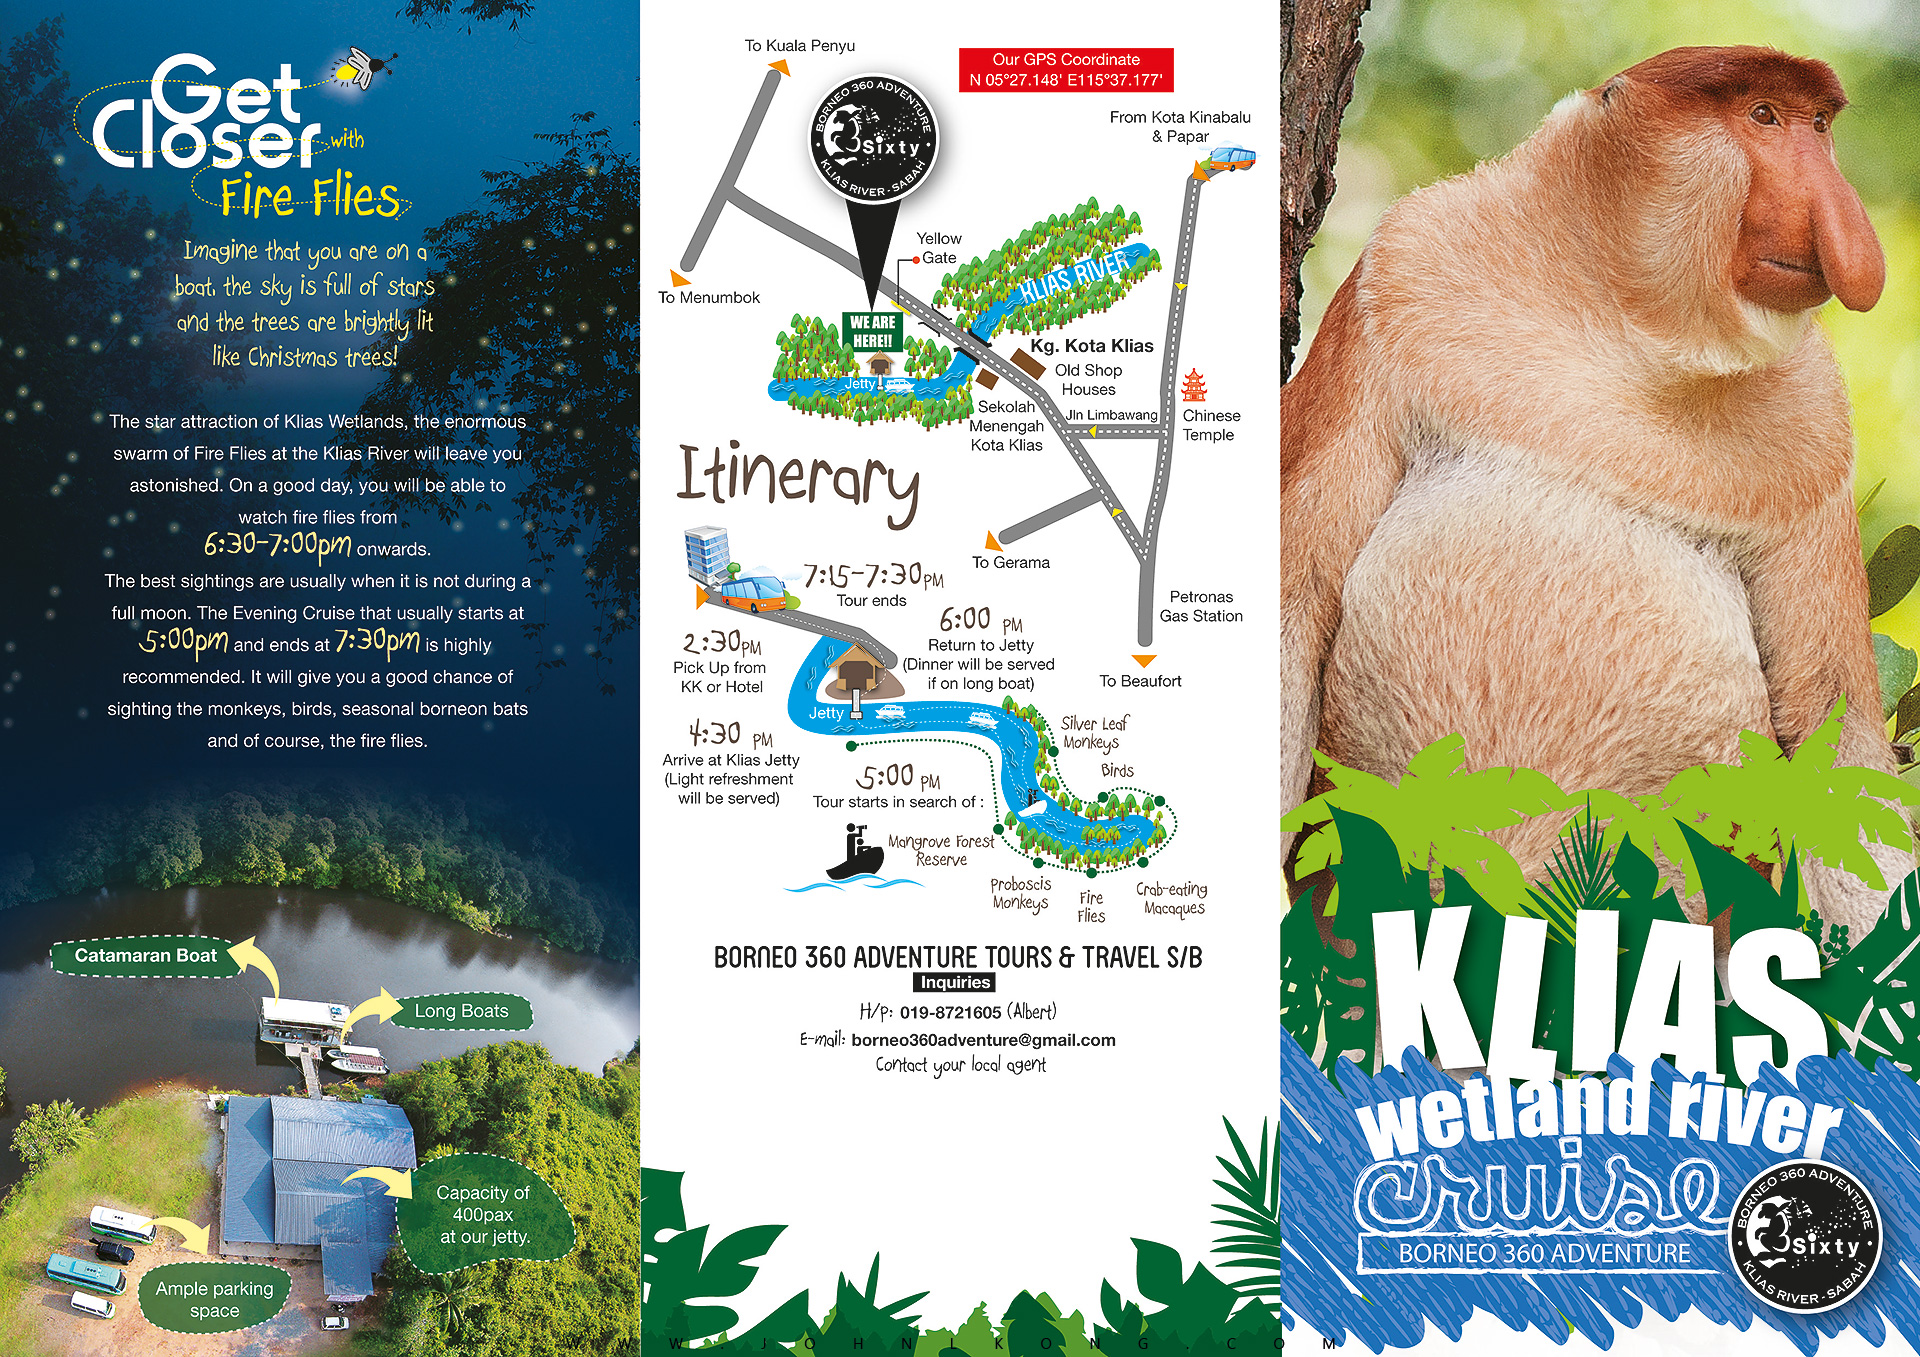 In Touch With Wildlife Just 90 Mins Drive from Kota Kinabalu